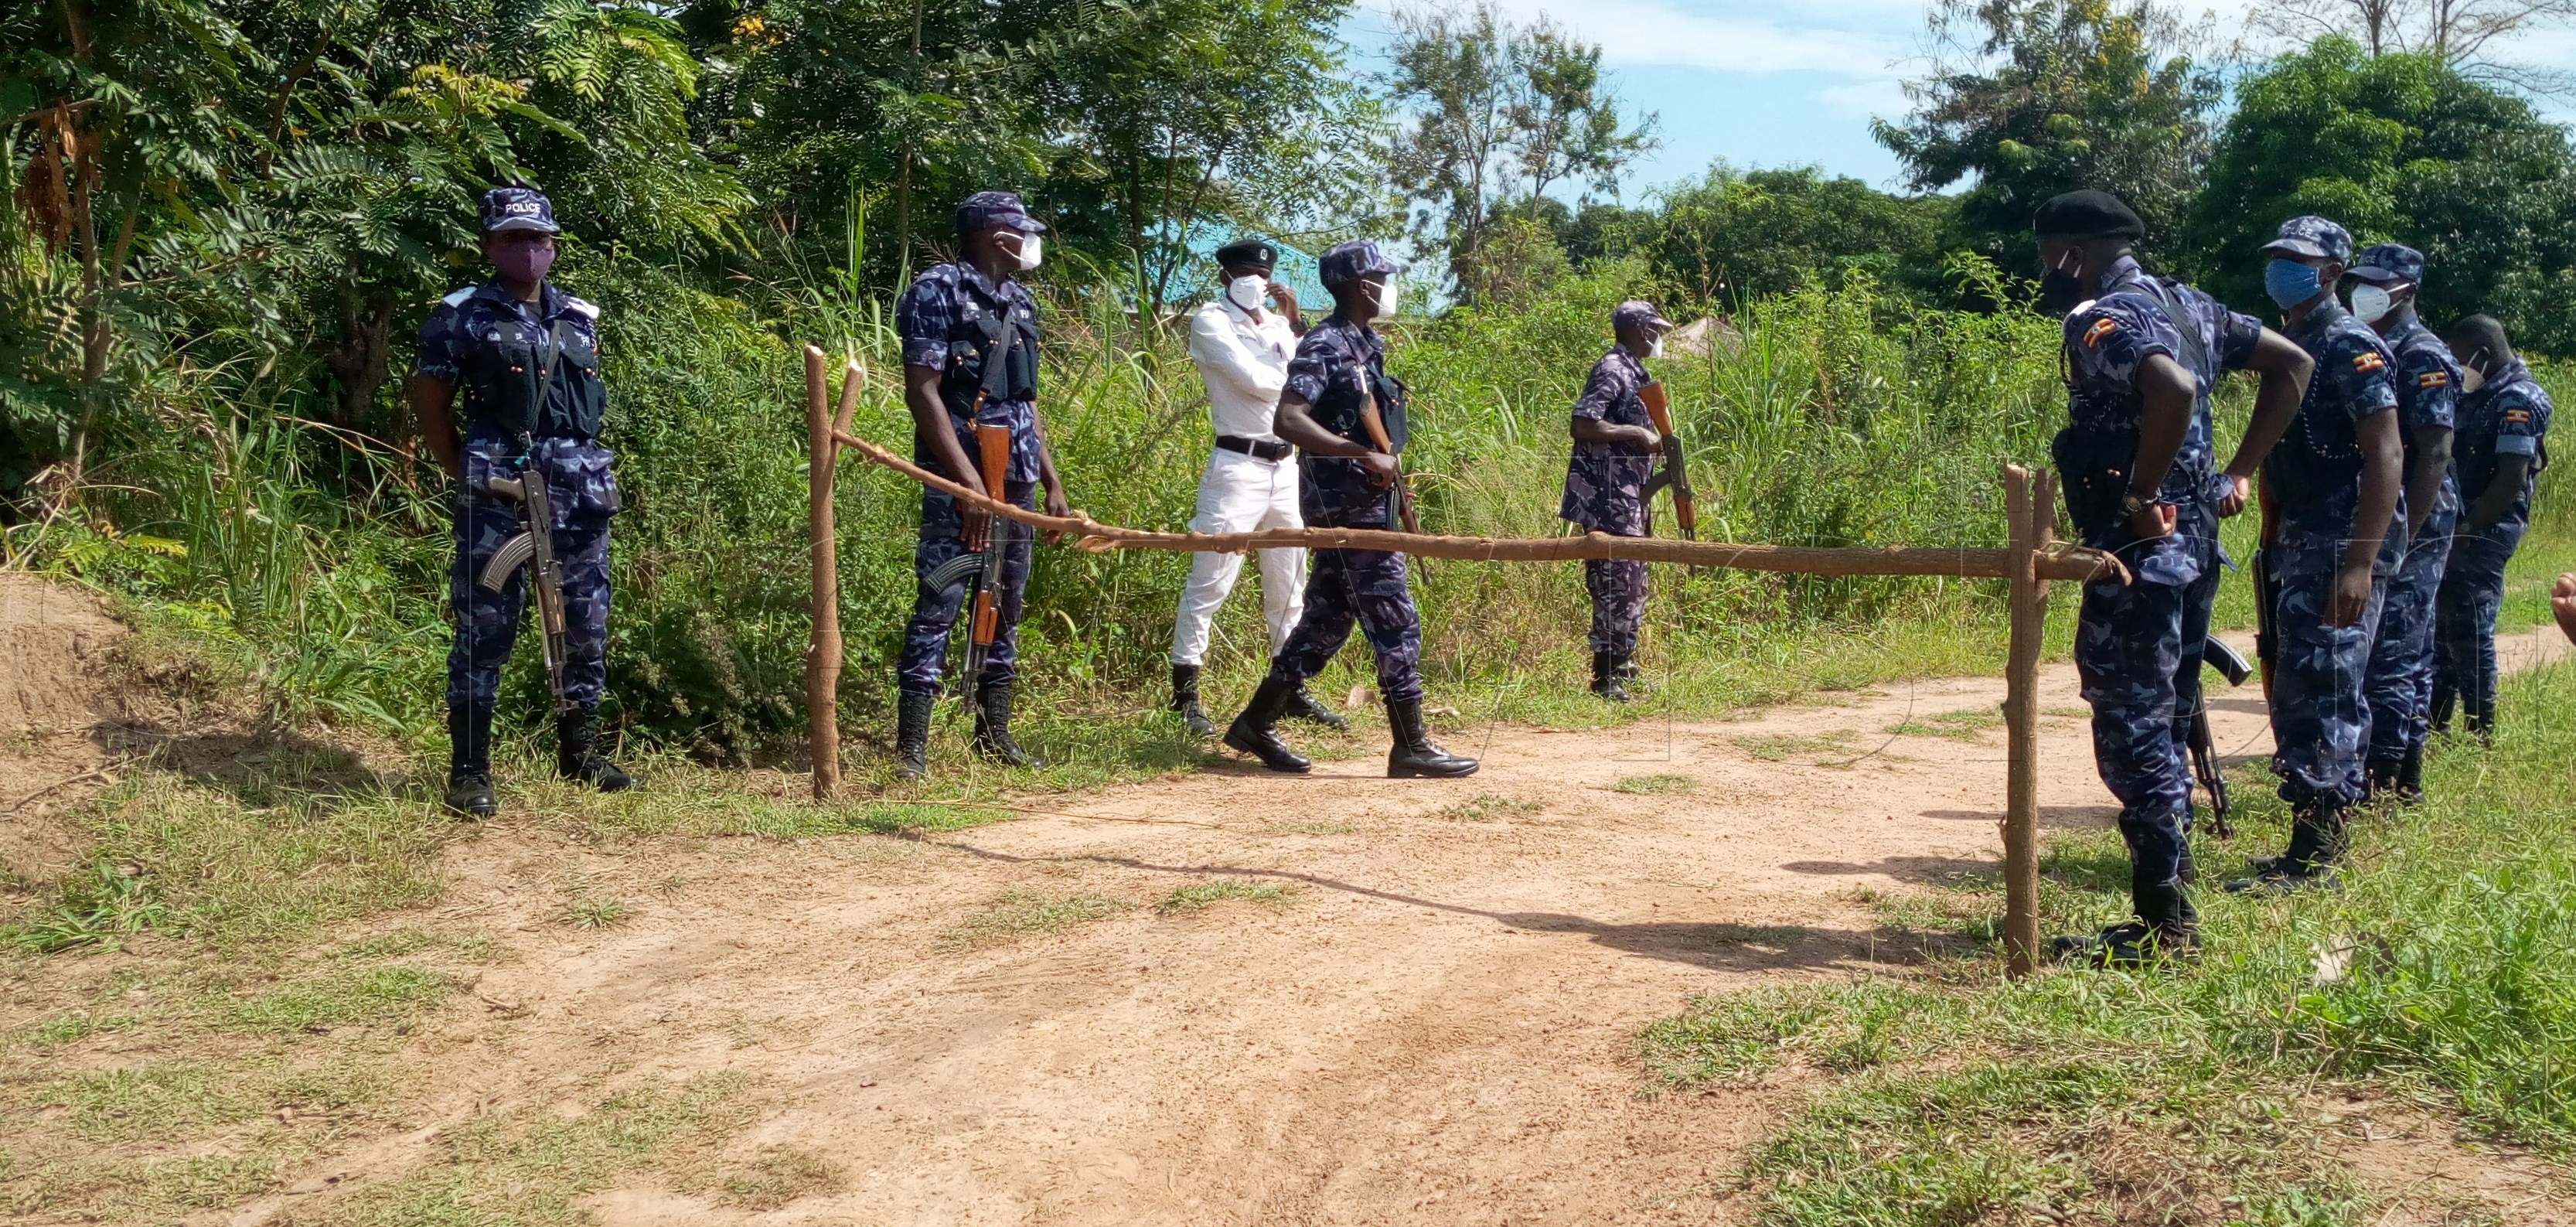 Police on duty in Obongi district. Photo by Edna Piyic